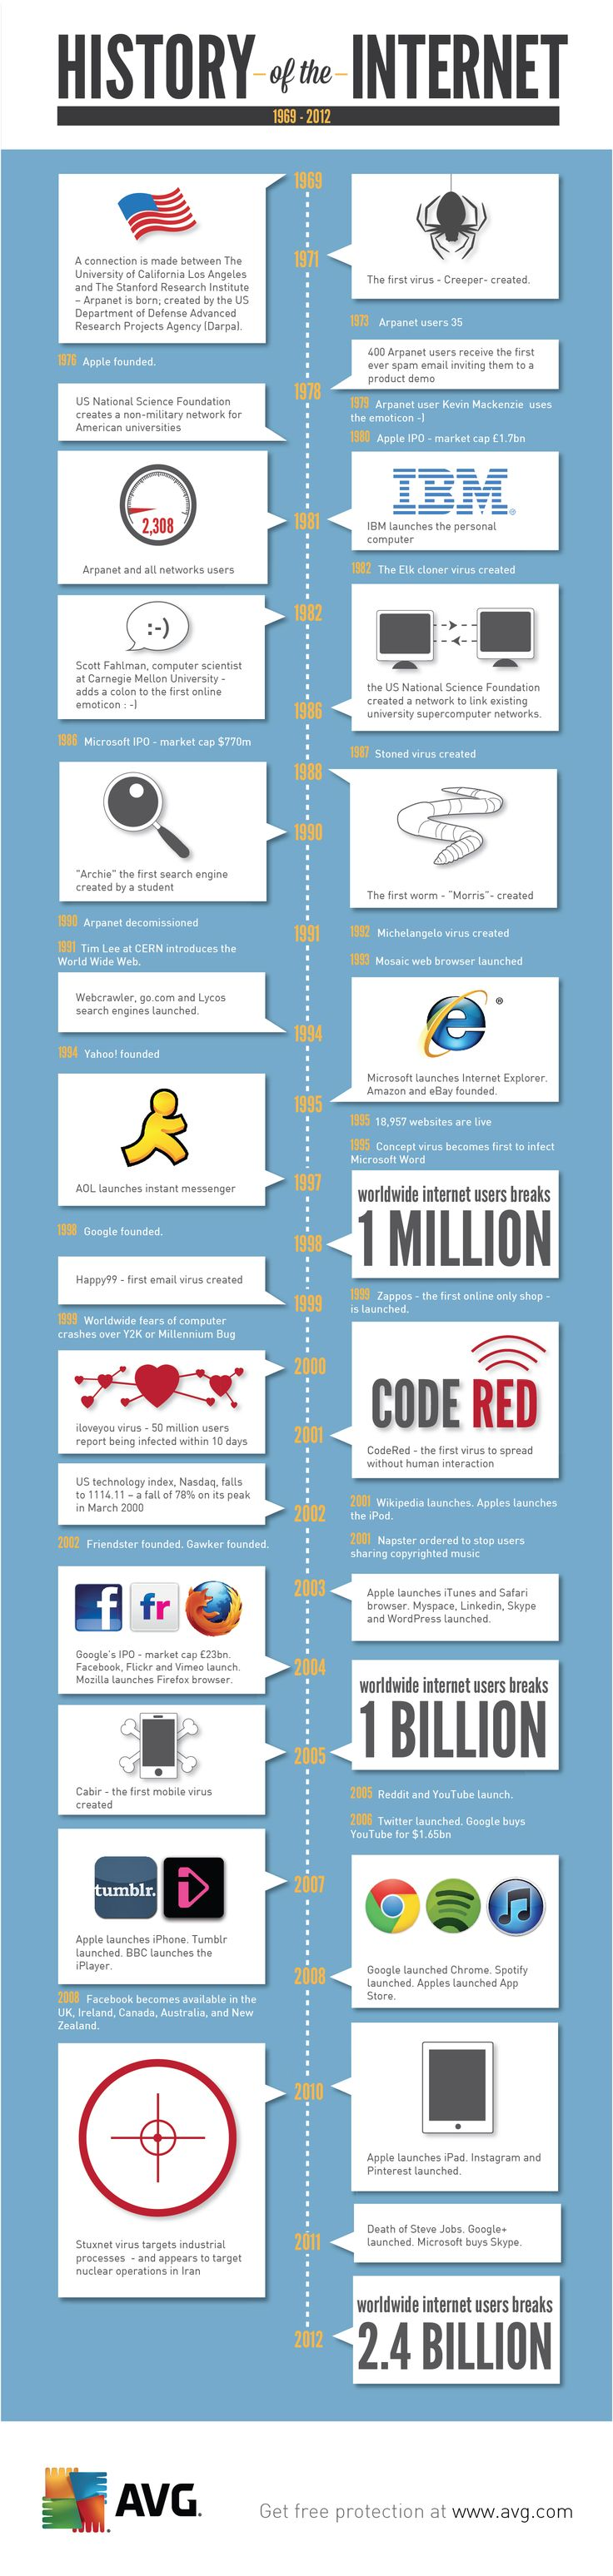 The History Of The Internet (1969-2012) [INFOGRAPHIC] - AllTwitter